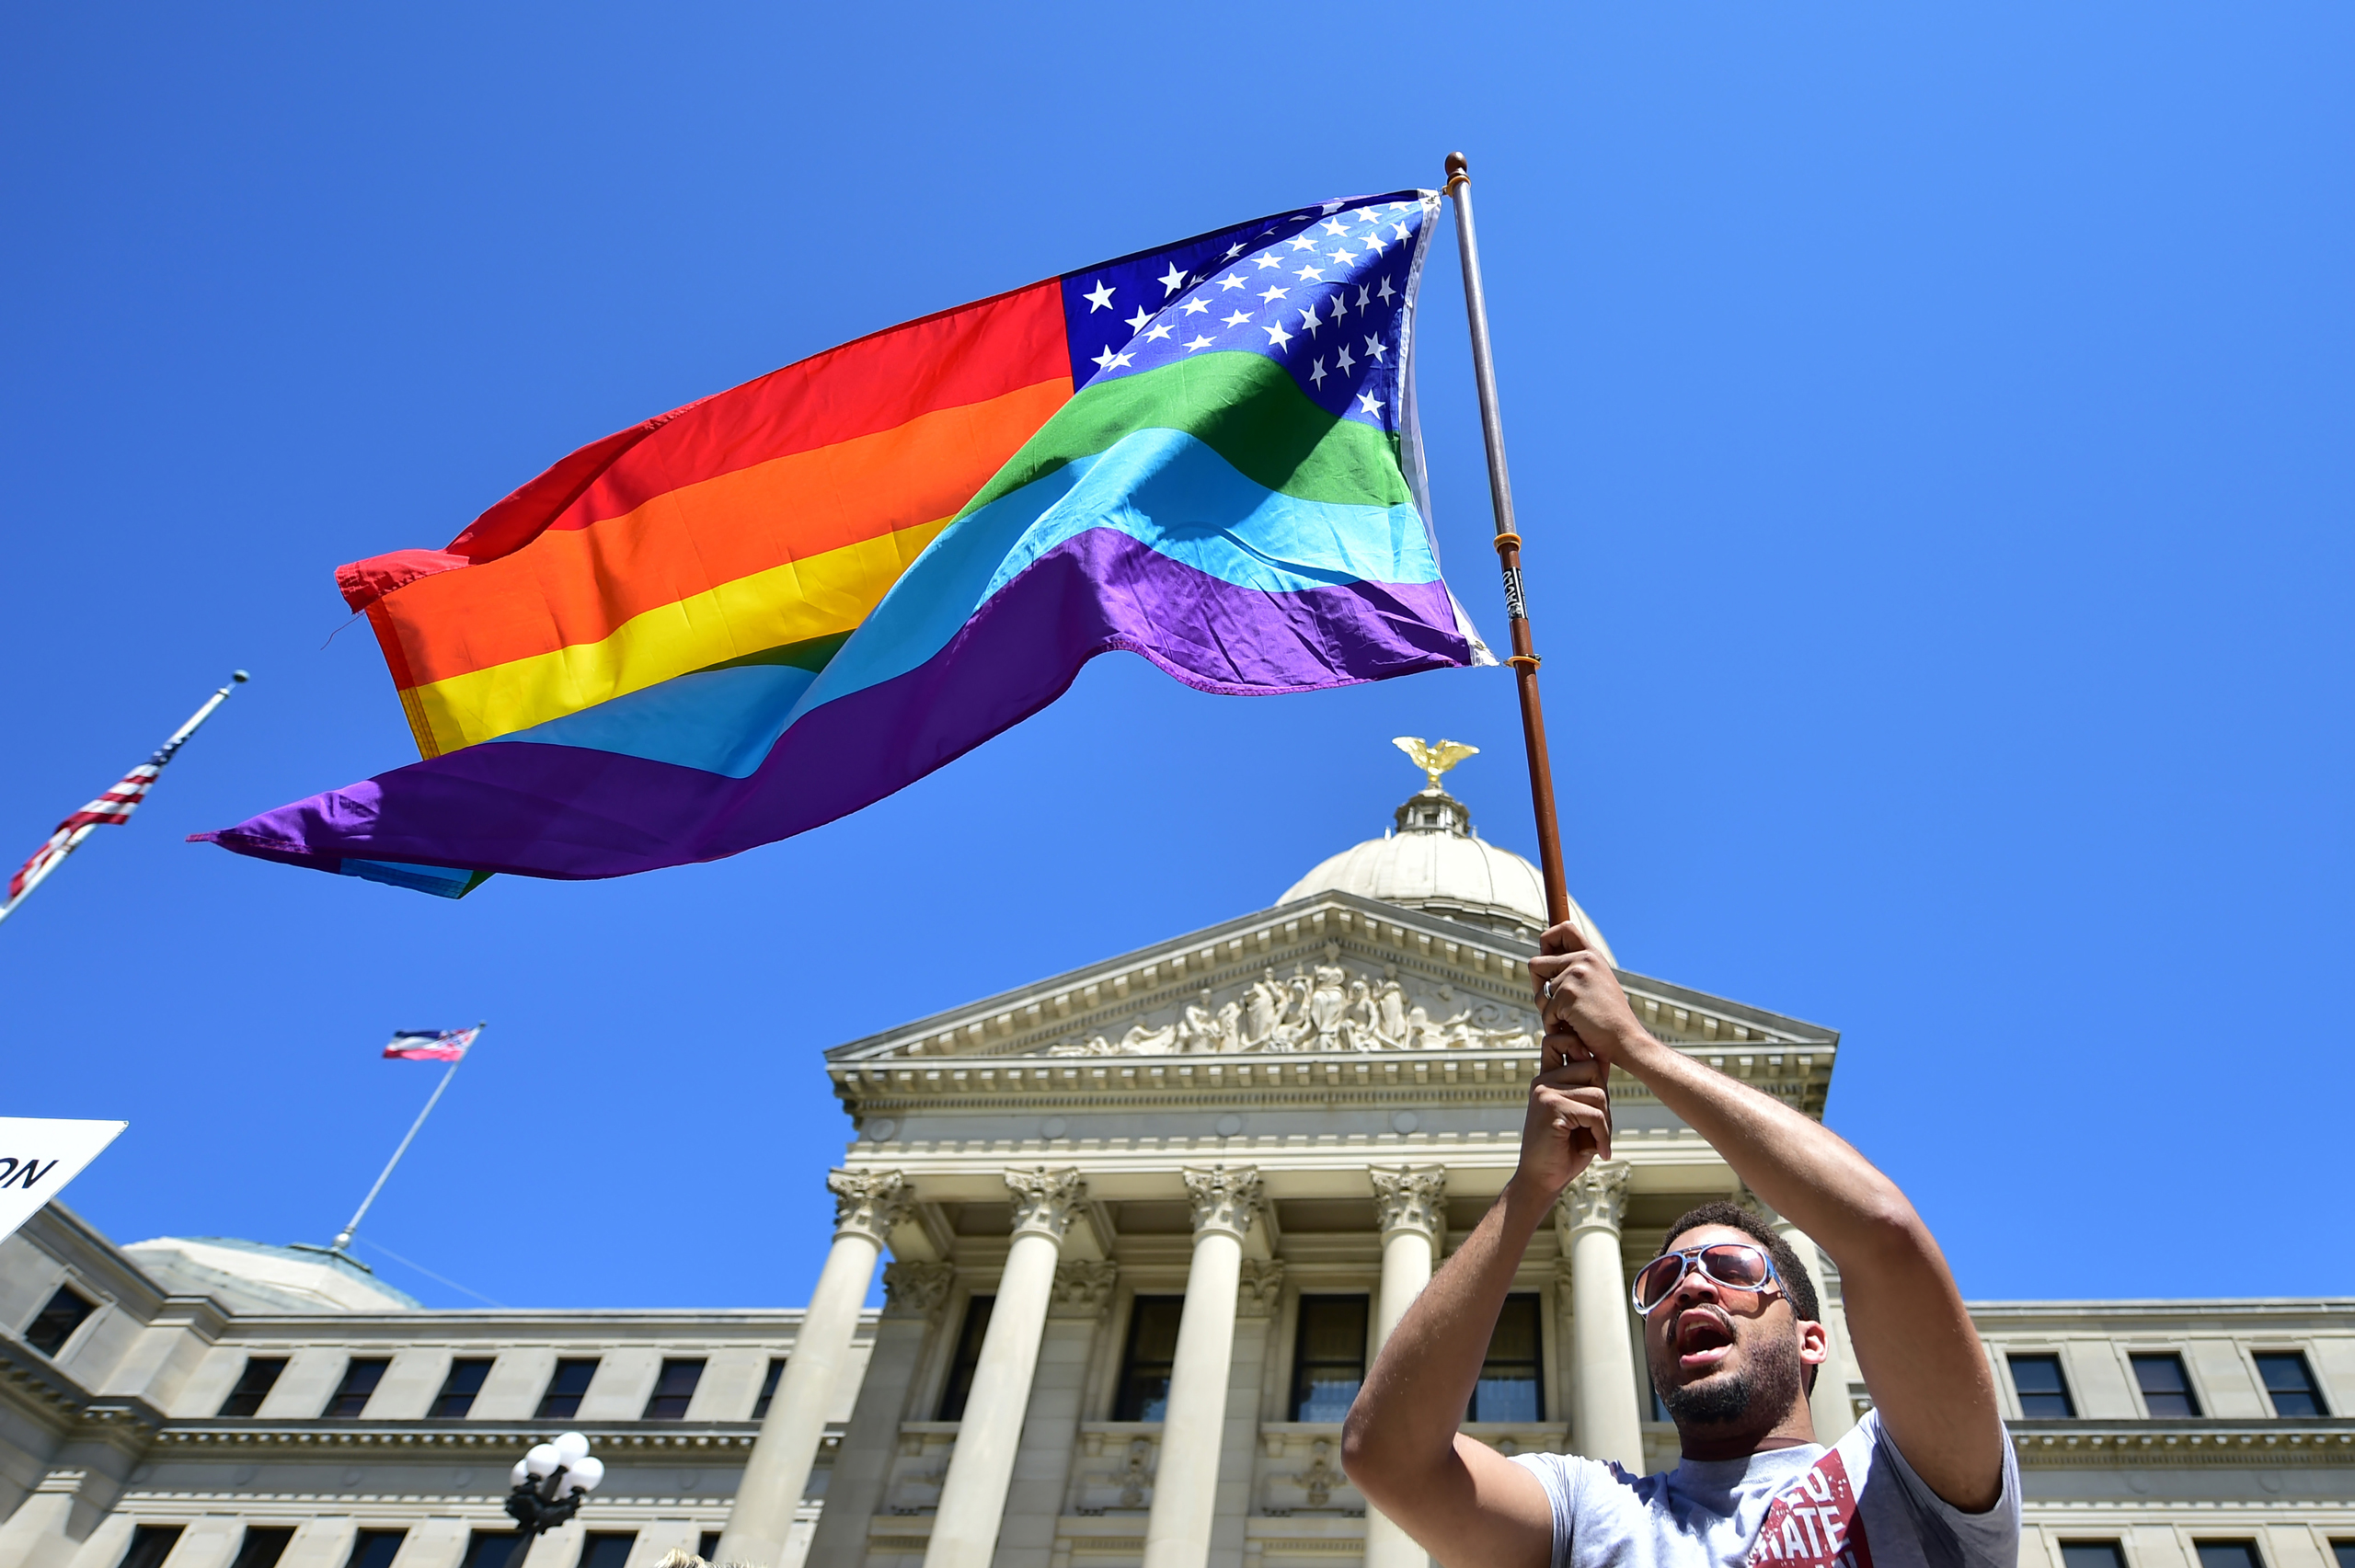 Meridian resident Nykolas Alford waves a rainbow-colored flag designed with the U.S. flag during a Human Rights Campaign protest of House Bill 1523 on the Mississippi State Capitol steps in Jackson, Miss., on Mar. 29, 2016.